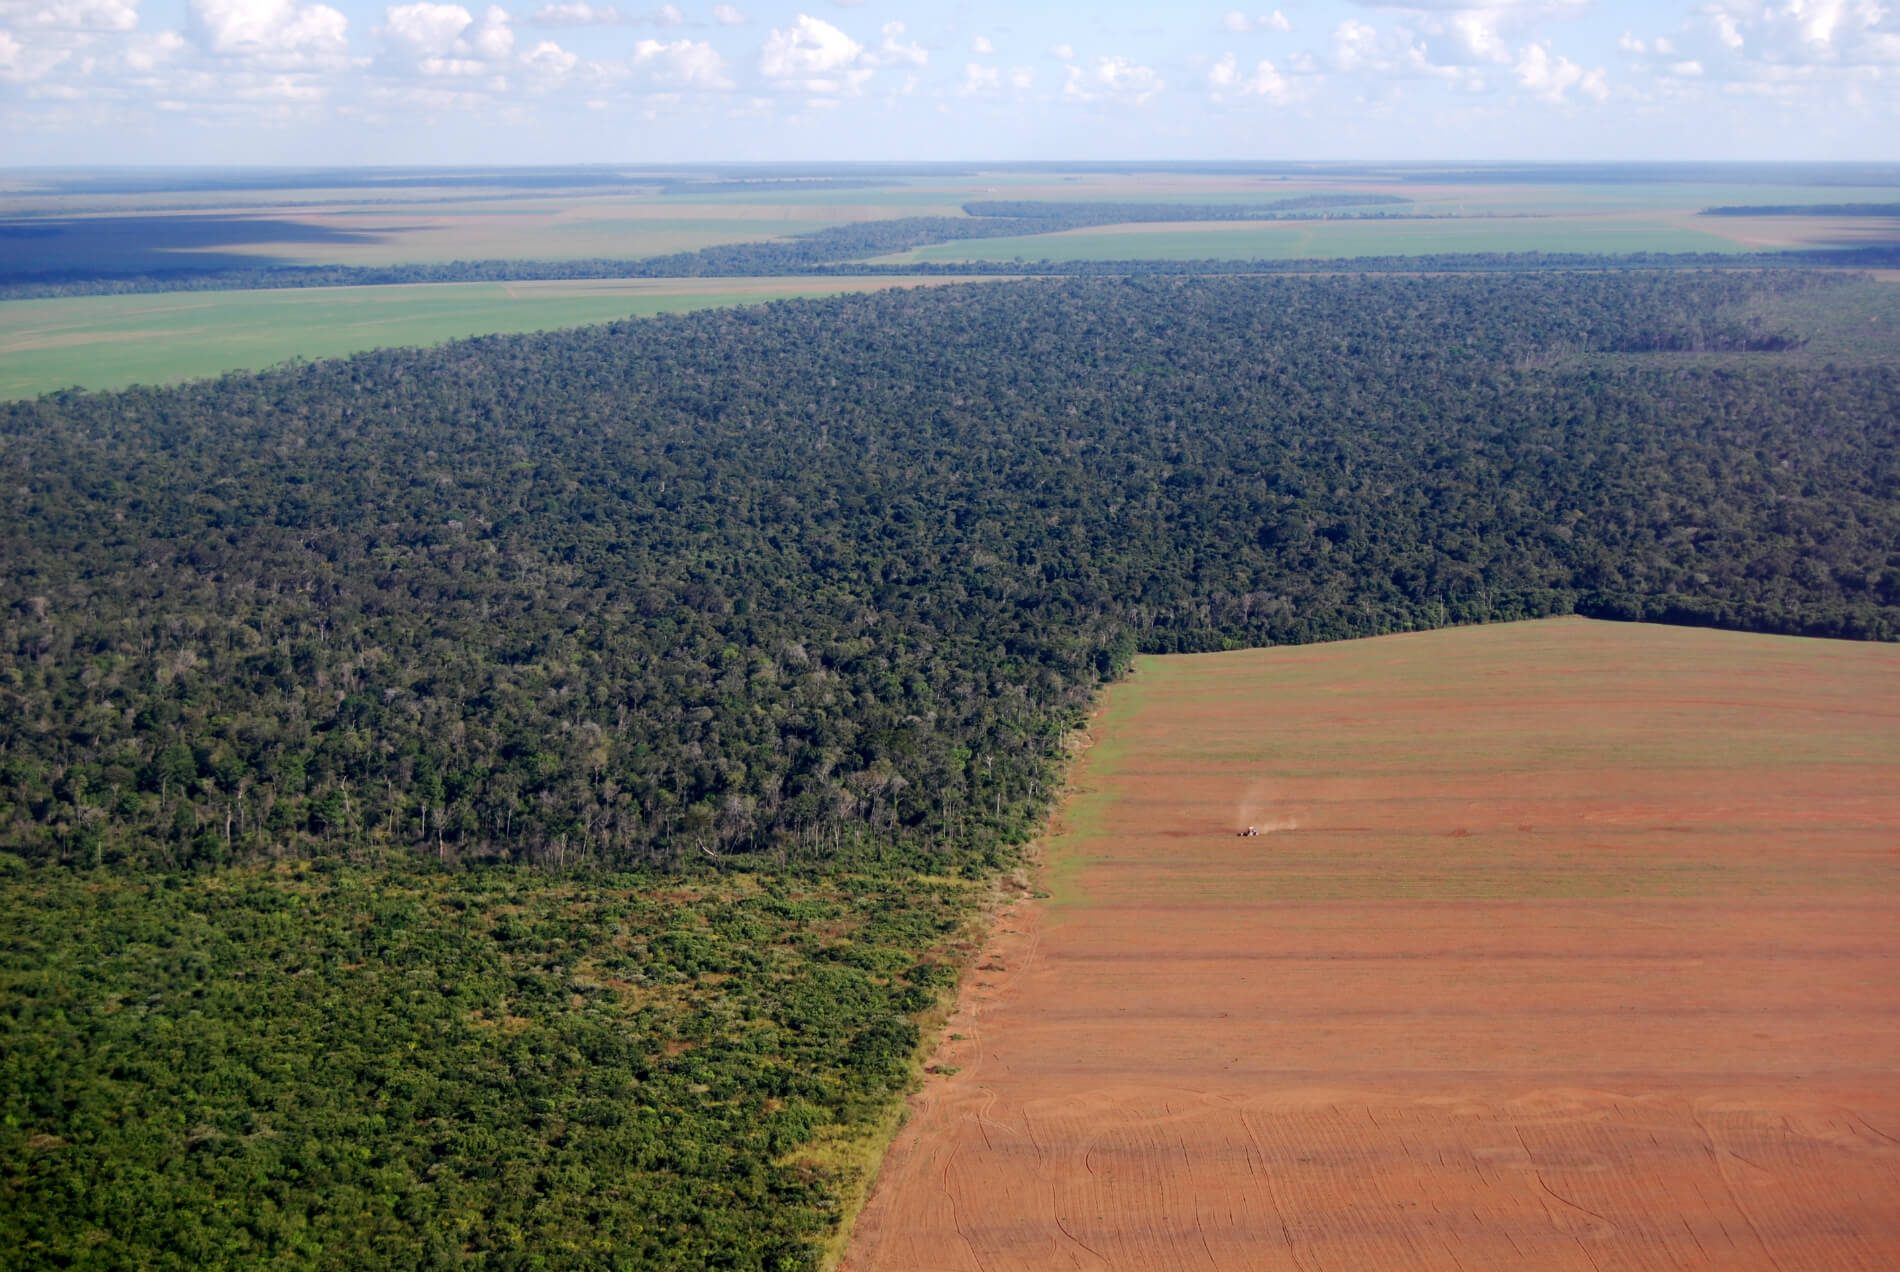 Monocultures of crops such as soy in the Amazon are causing deforestation and environmental degradation.